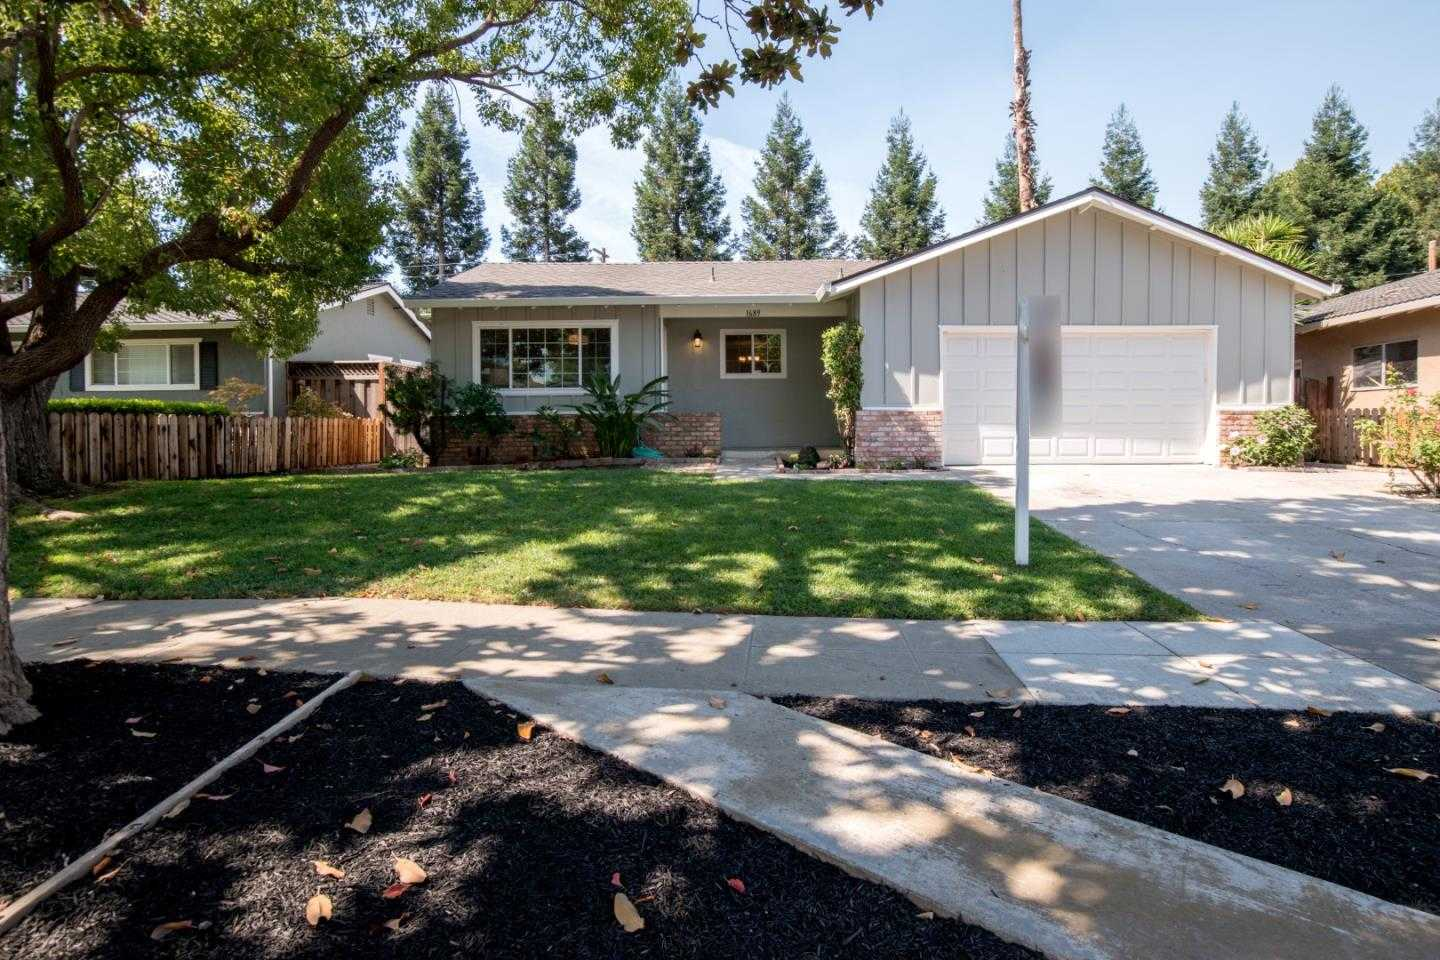 $1,274,888 - 4Br/2Ba -  for Sale in San Jose